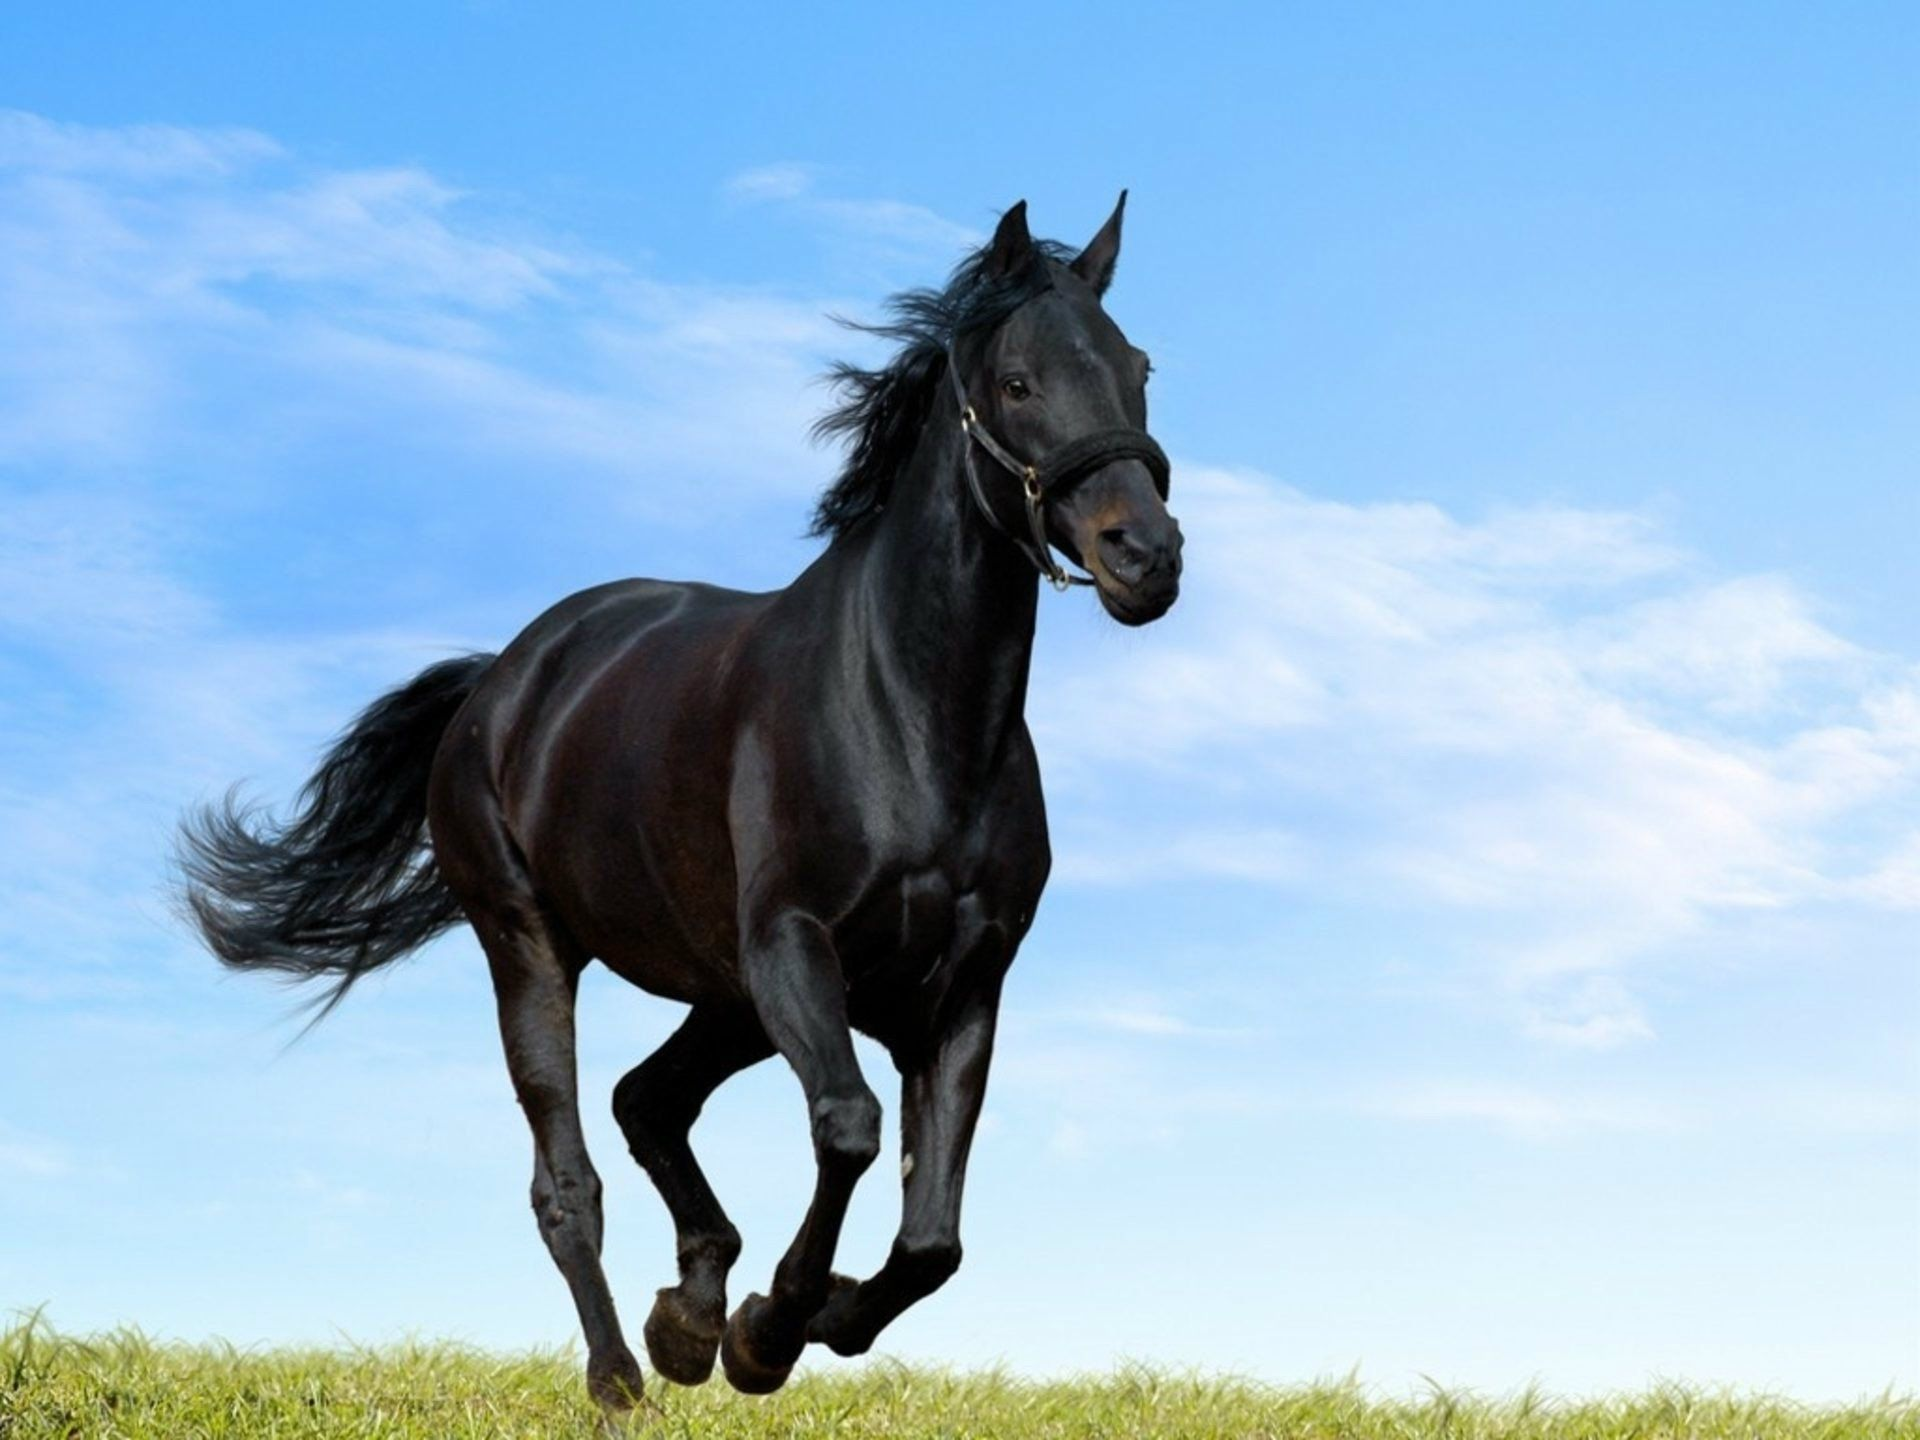 Horse Wallpapers Hd Pictures Free Download Hd Walls Horse Background Horse Wallpaper Horses